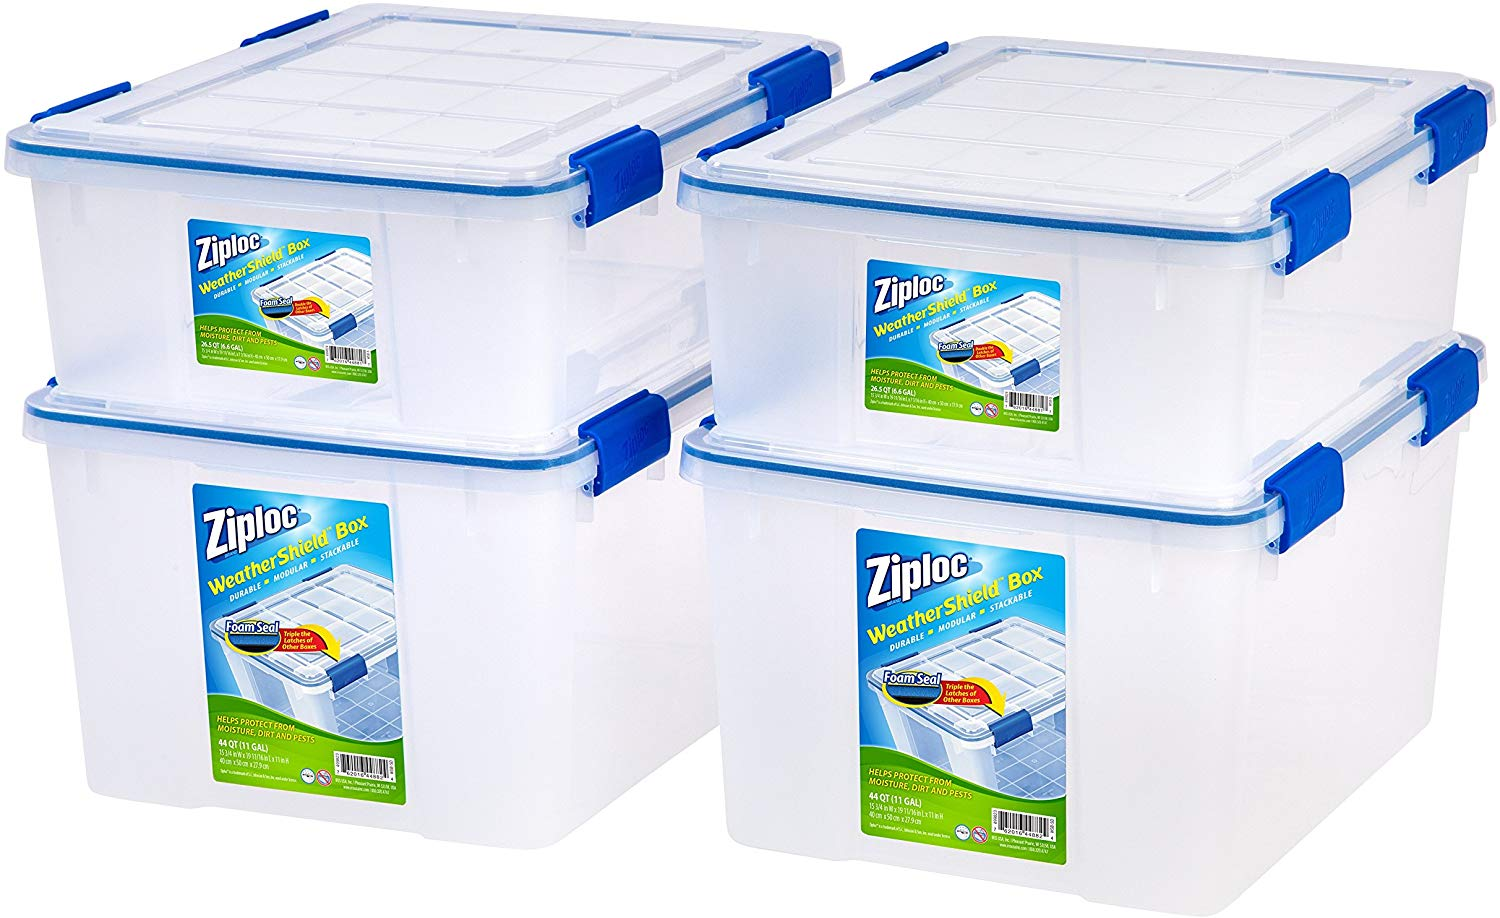 Ziploc WeatherShield 26.5 and 44 Quart Storage Box, 4 Pack, Clear